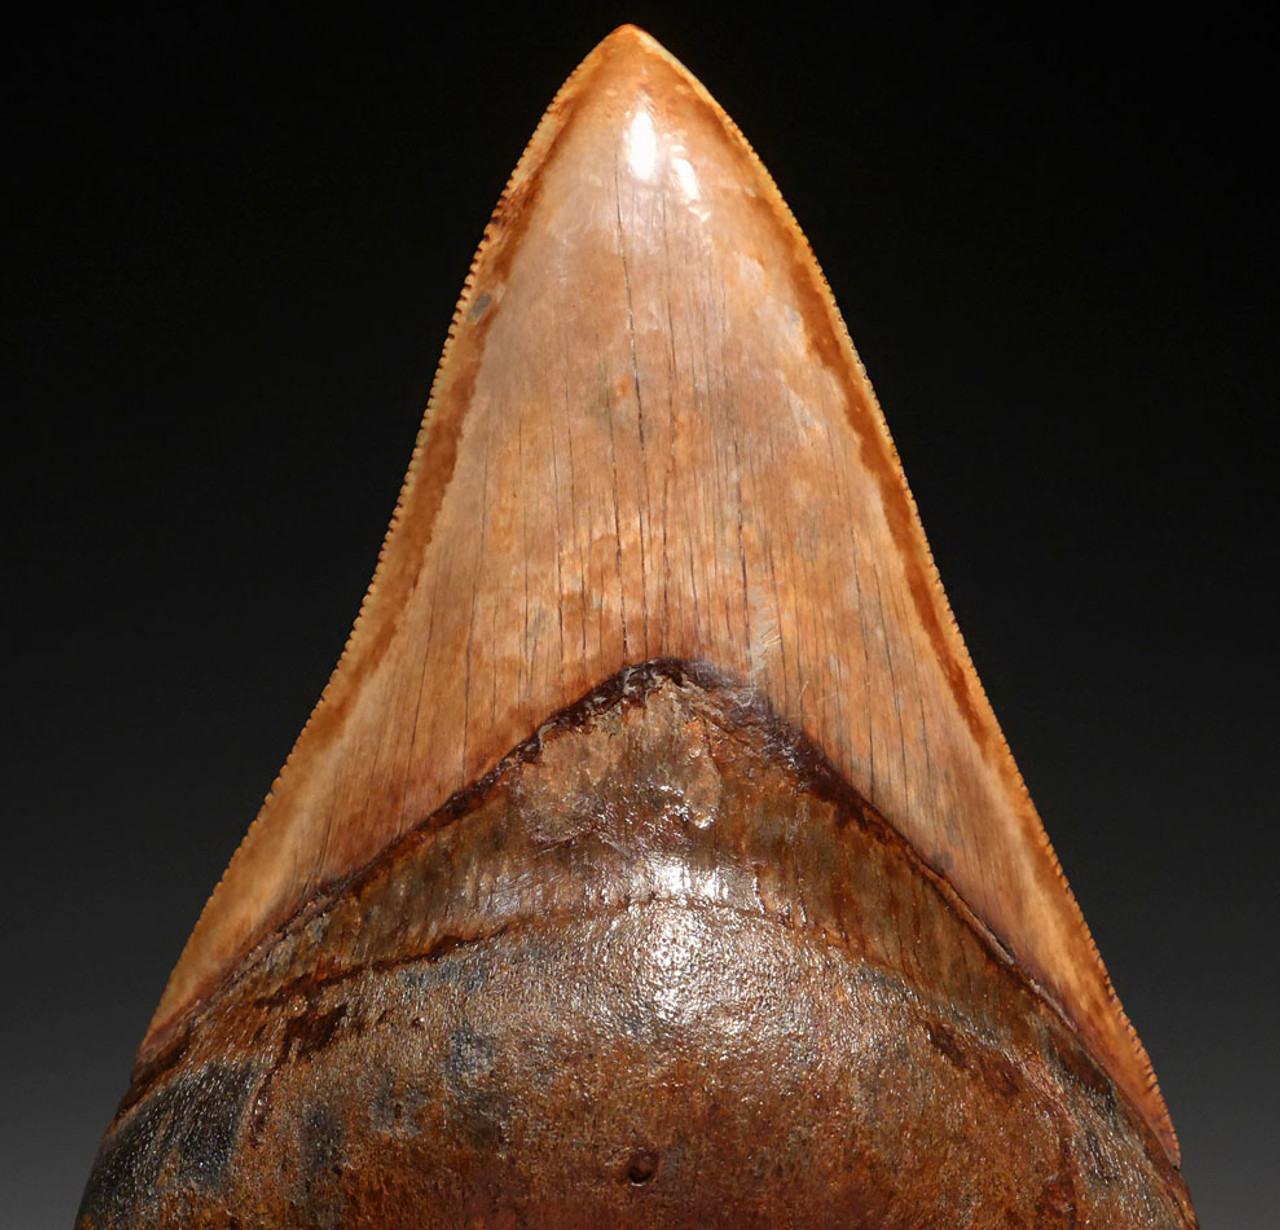 SH6-368 - COLLECTOR GRADE 4 INCH STABBING LOWER JAW MEGALODON SHARK TOOTH WITH MOTTLED SILVERY ORANGE ENAMEL